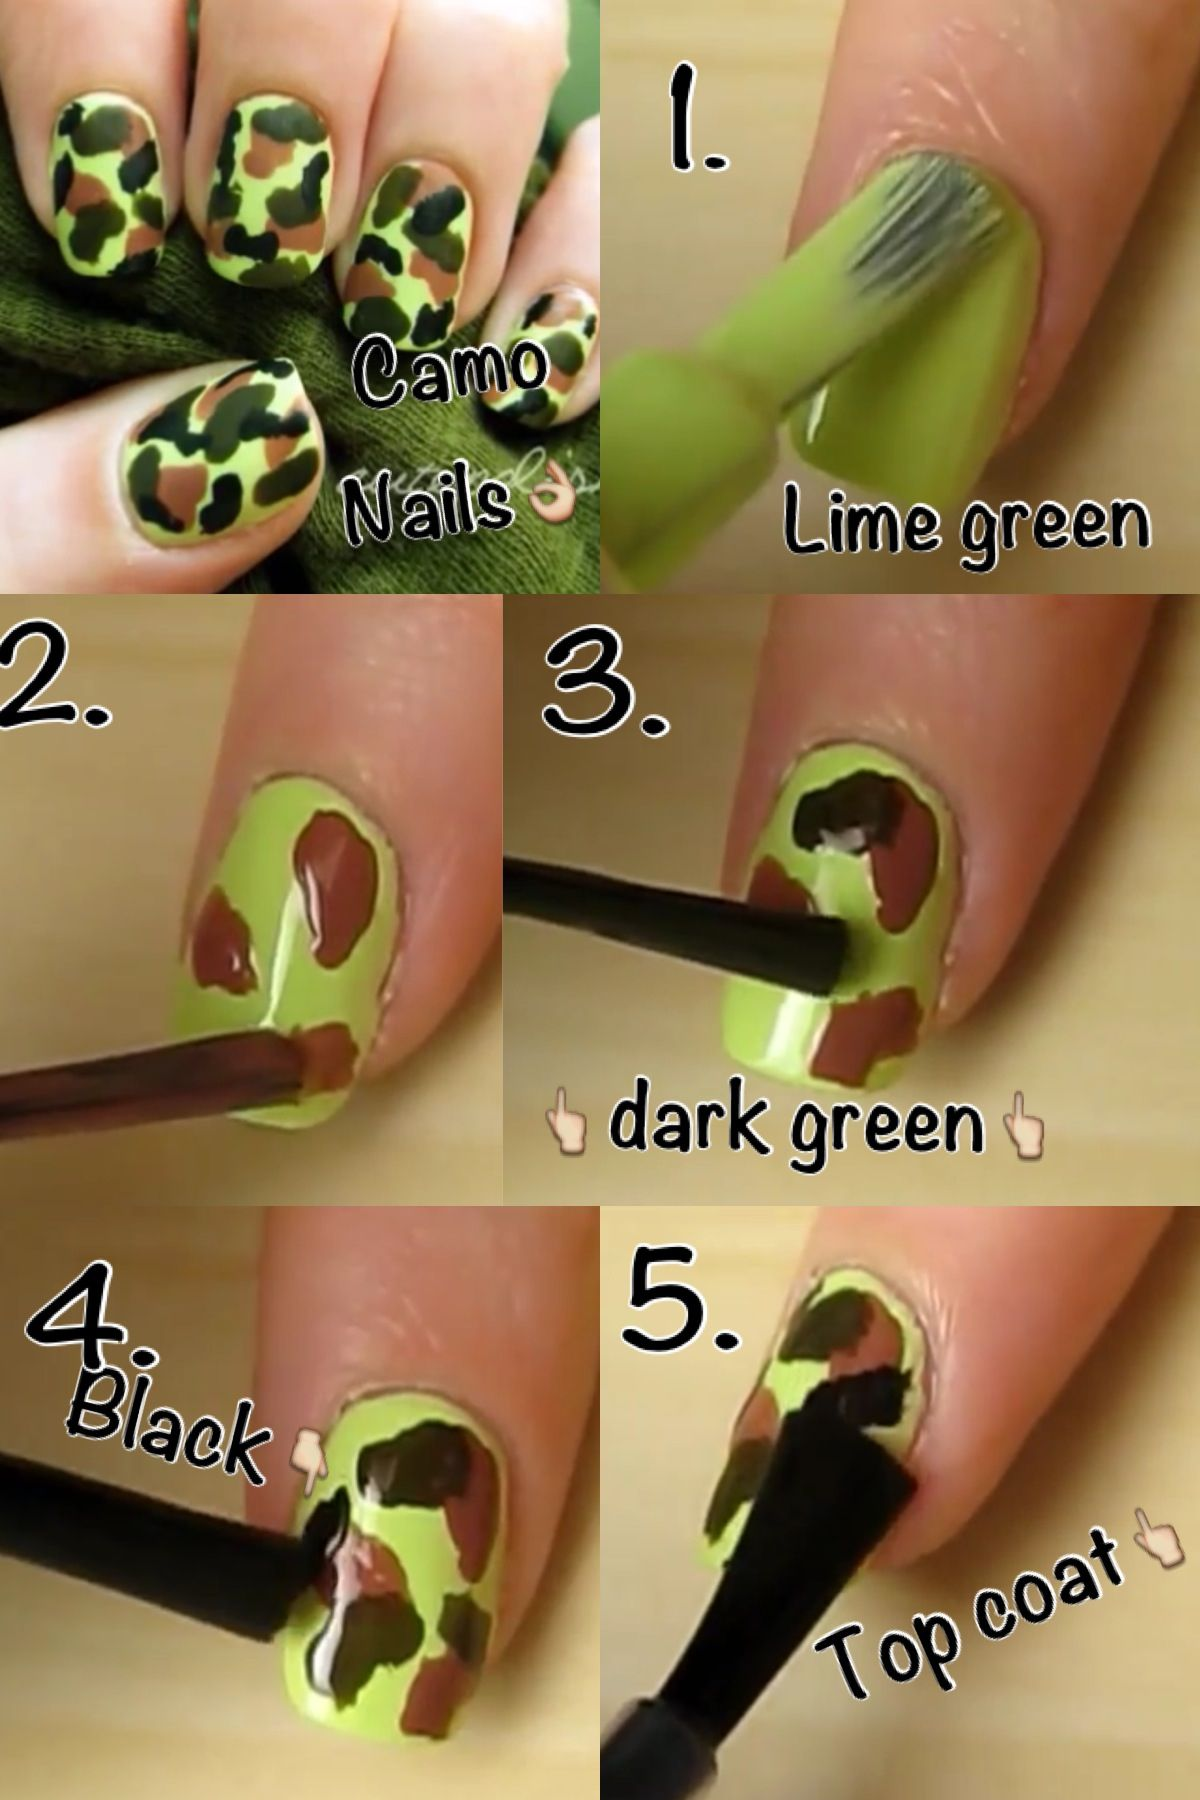 DIY camo nails. (NO tools required) 👌